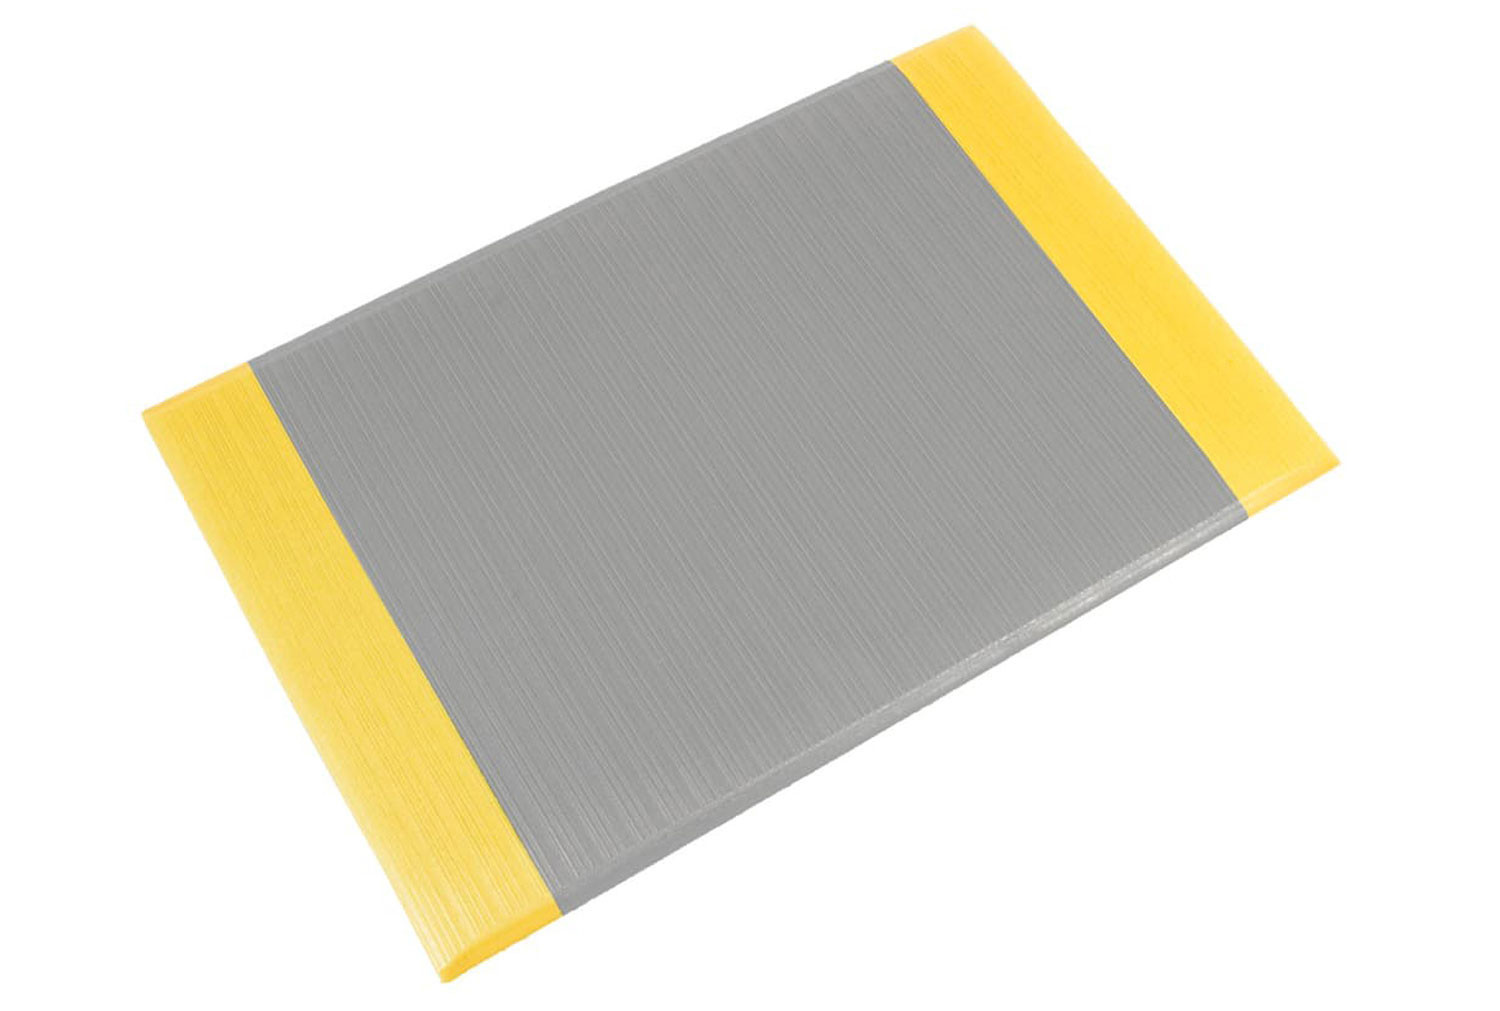 Orthomat Ribbed Anti Fatigue Workplace Safety Mat